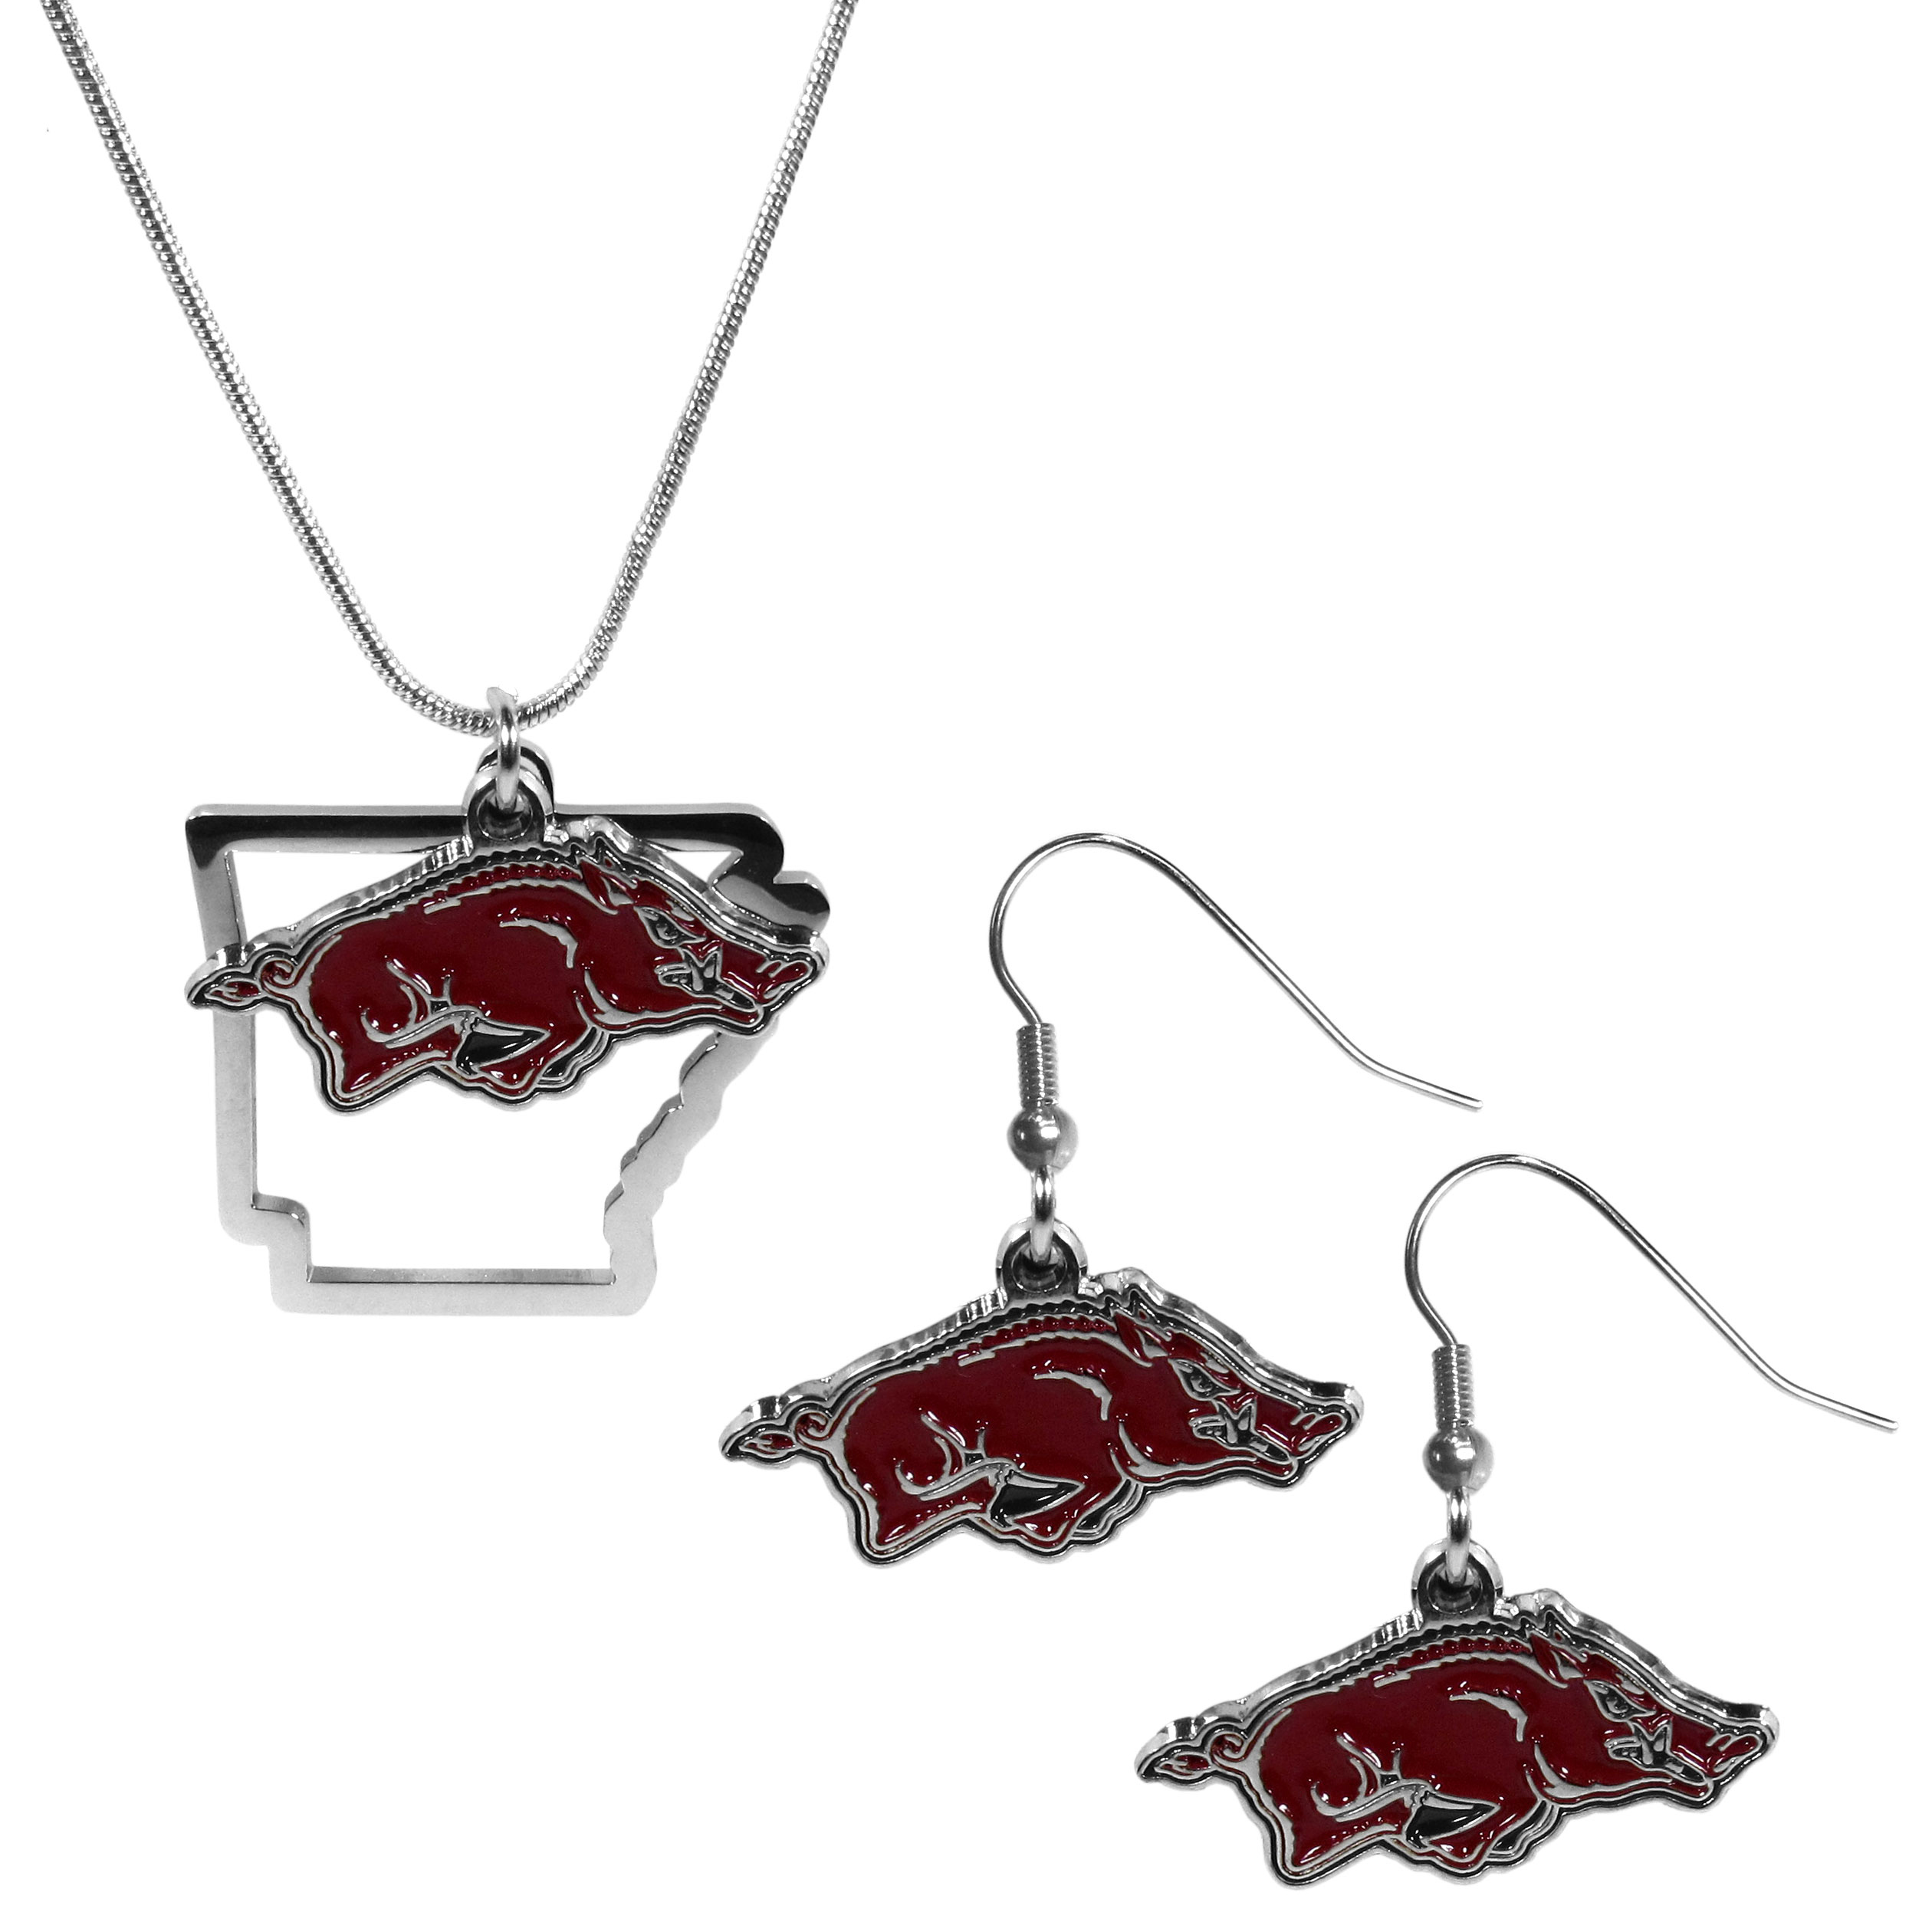 Arkansas Razorbacks Dangle Earrings and State Necklace Set - Get in on the trend! State themes are a trend that just keeps getting more popular and this jewelry set takes the state style and give it a sporty twist with a Arkansas Razorbacks necklace that features an Arizona state outline charm paired with a beautiful team charm and matching team charm dangle earrings. The earrings feature hypoallergenic fishhook posts that are nickel free.